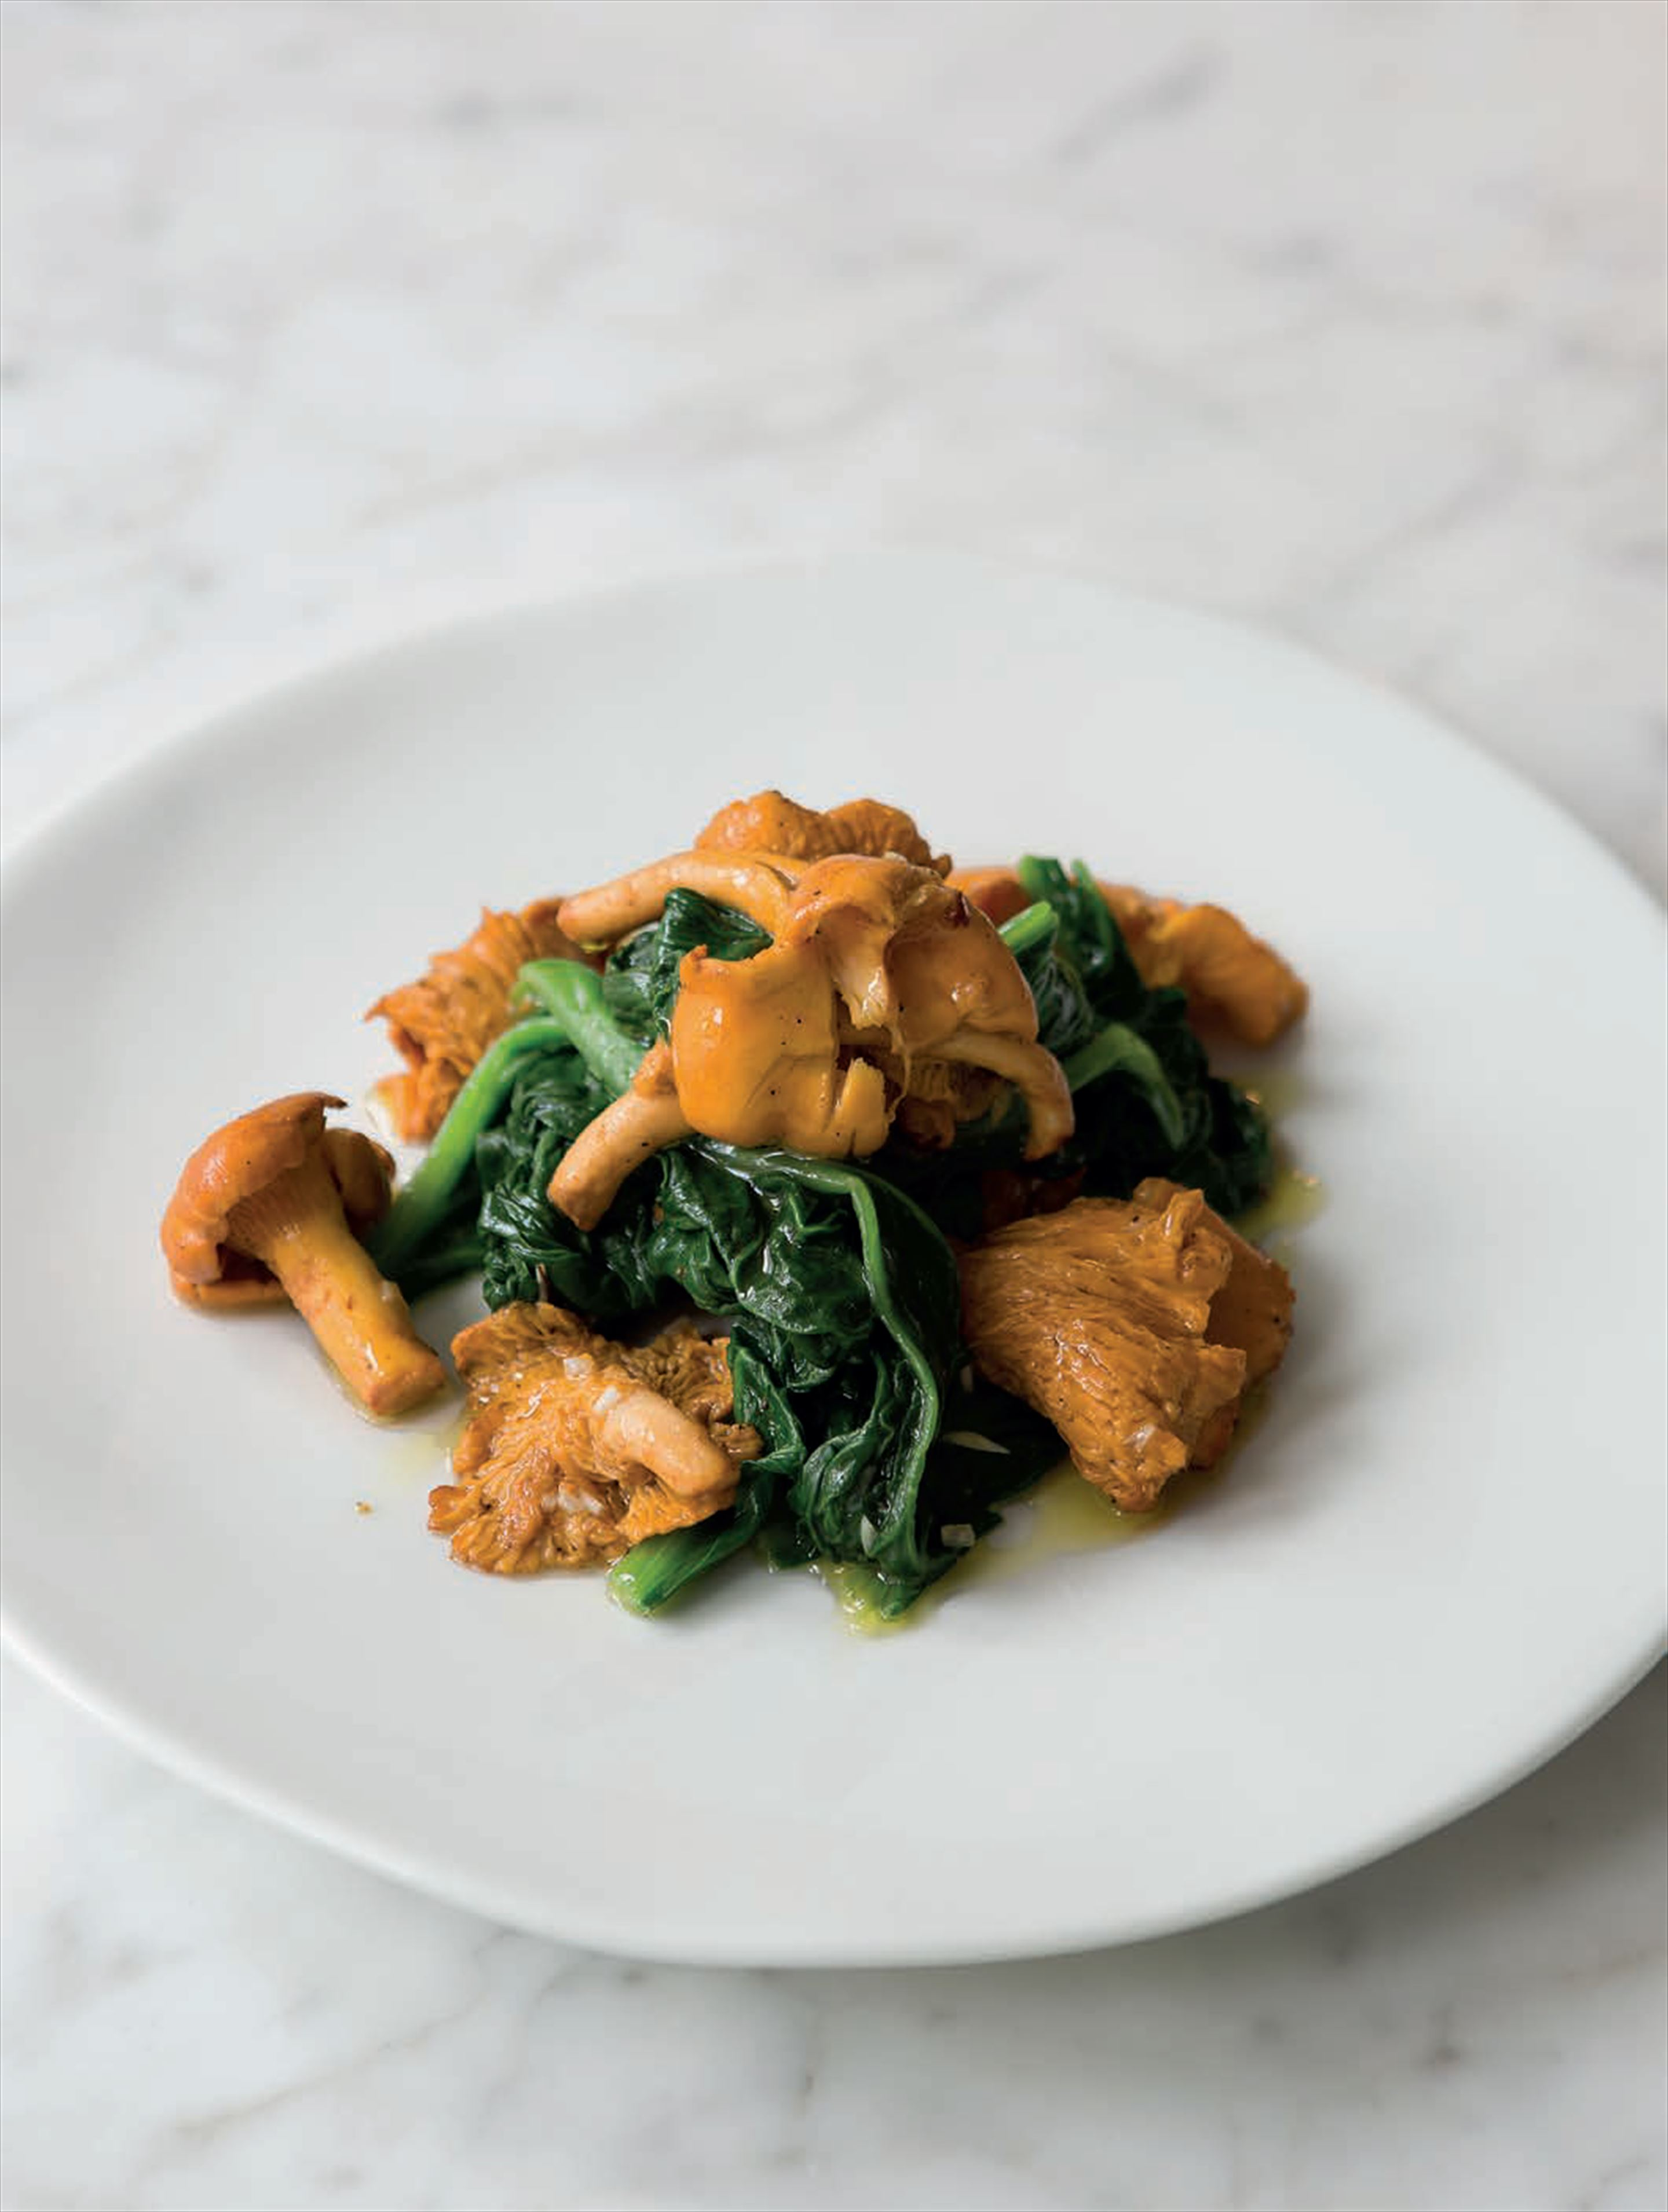 Spinach with girolles